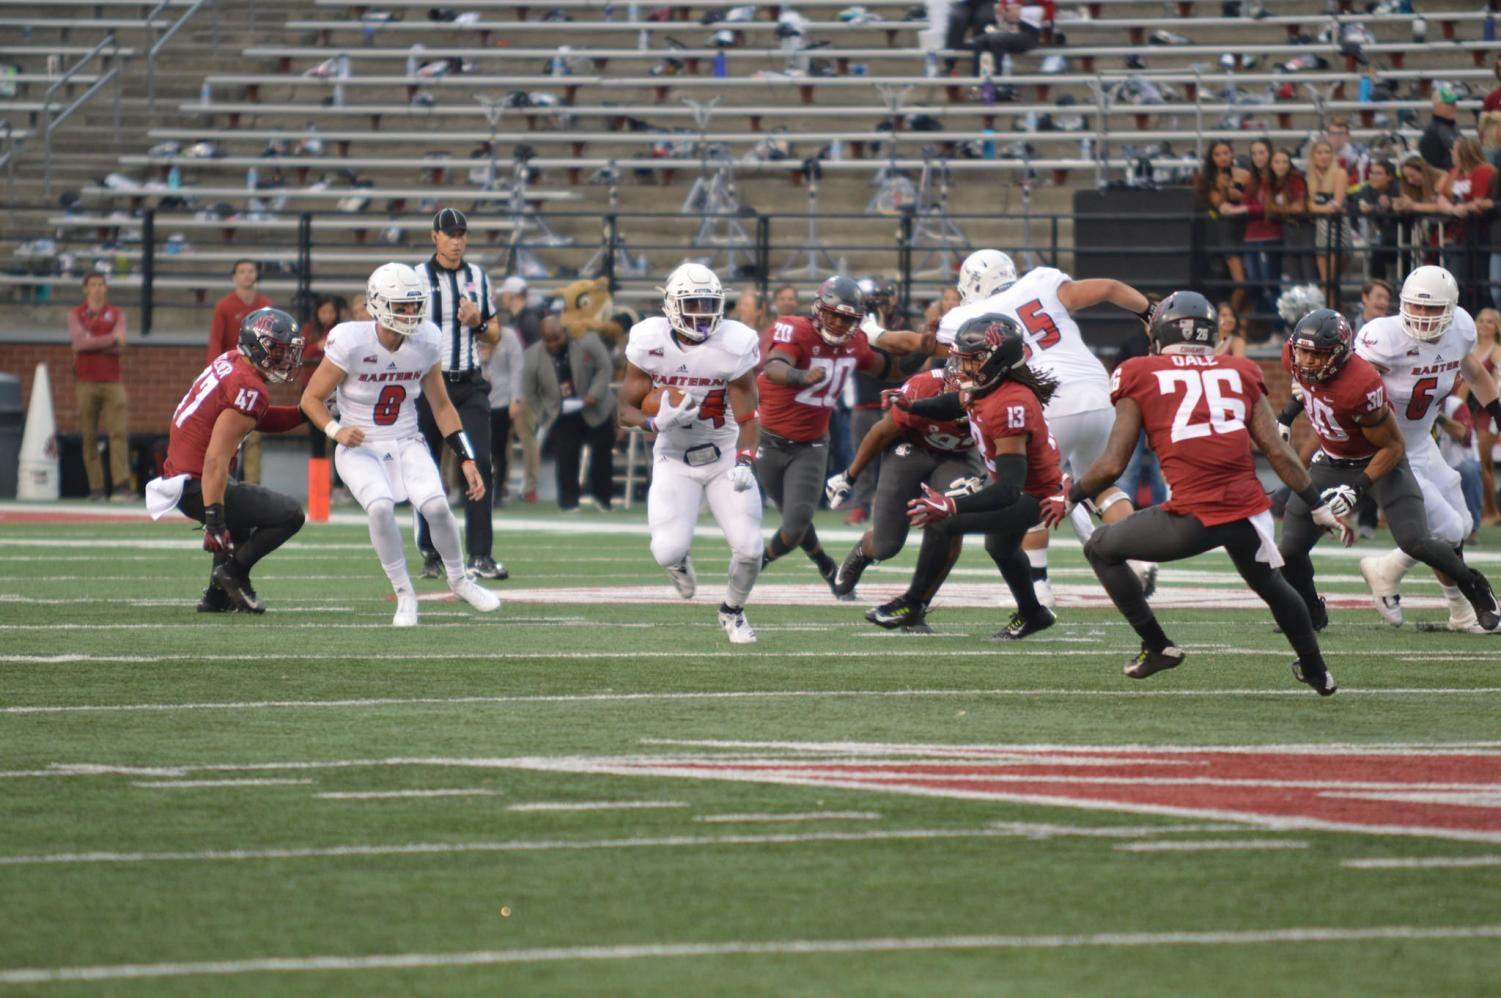 EWU RB Tamarick Pierce finds some open space during EWU's 59-24 loss to Washington State on Sept. 15 | Bailey Monteith for The Easterner